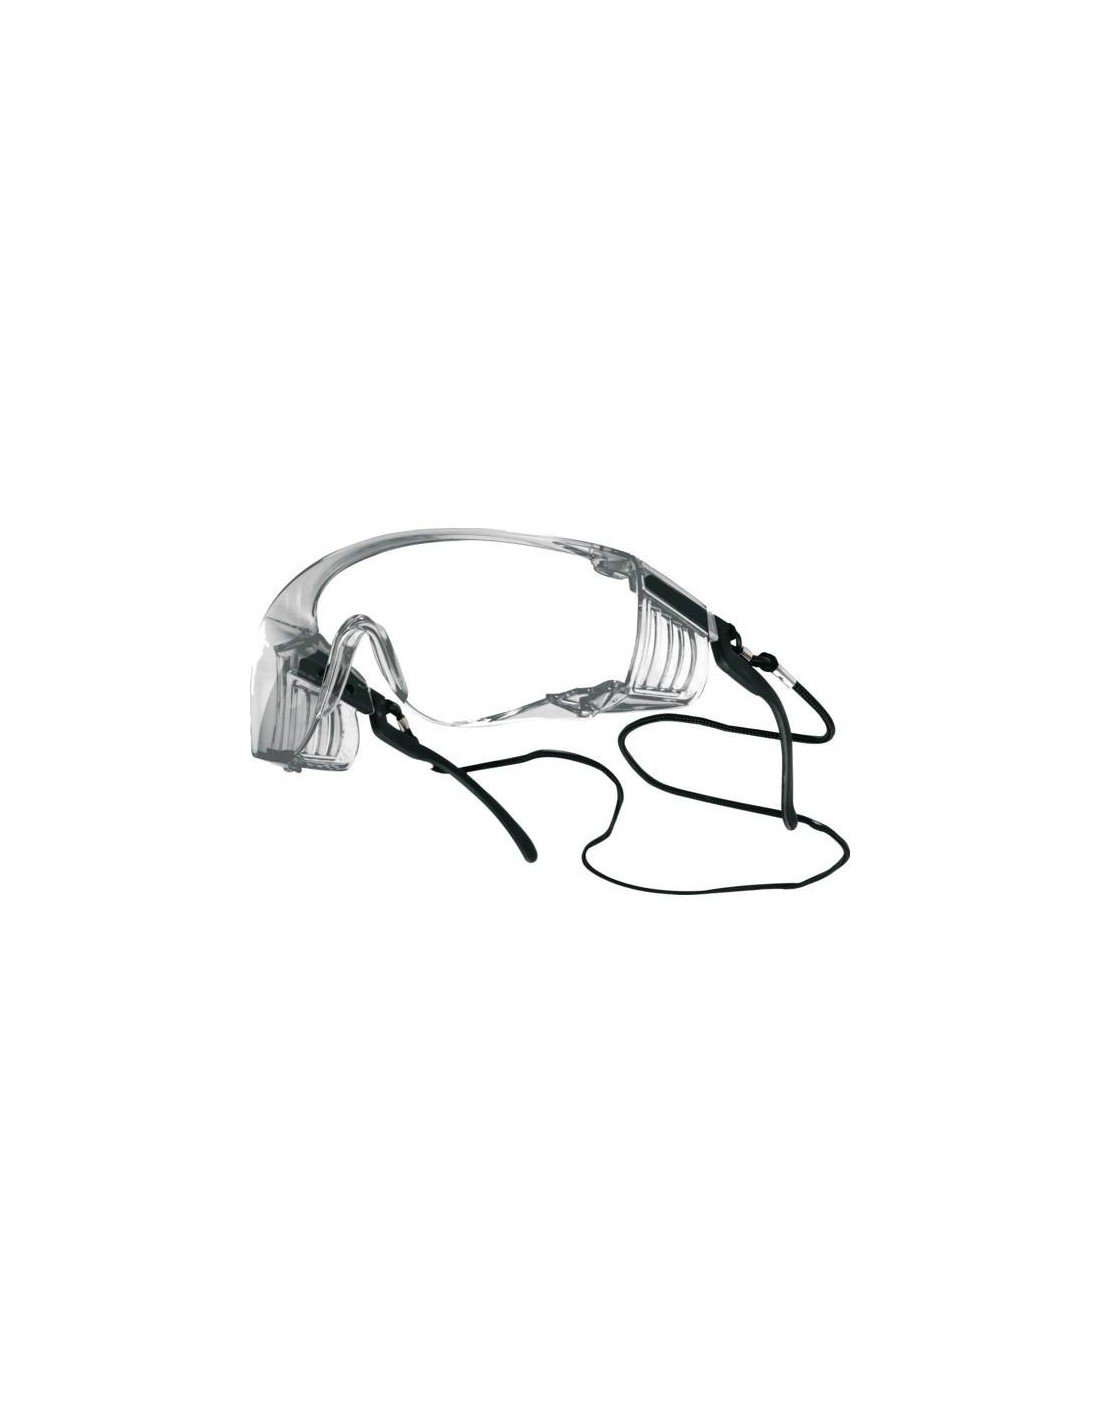 BOLSQUPSI - Bolle Coverspec Spectacls Clear PC ANTI-FOG BOLLE PROTECTION SQUALE CLEAR